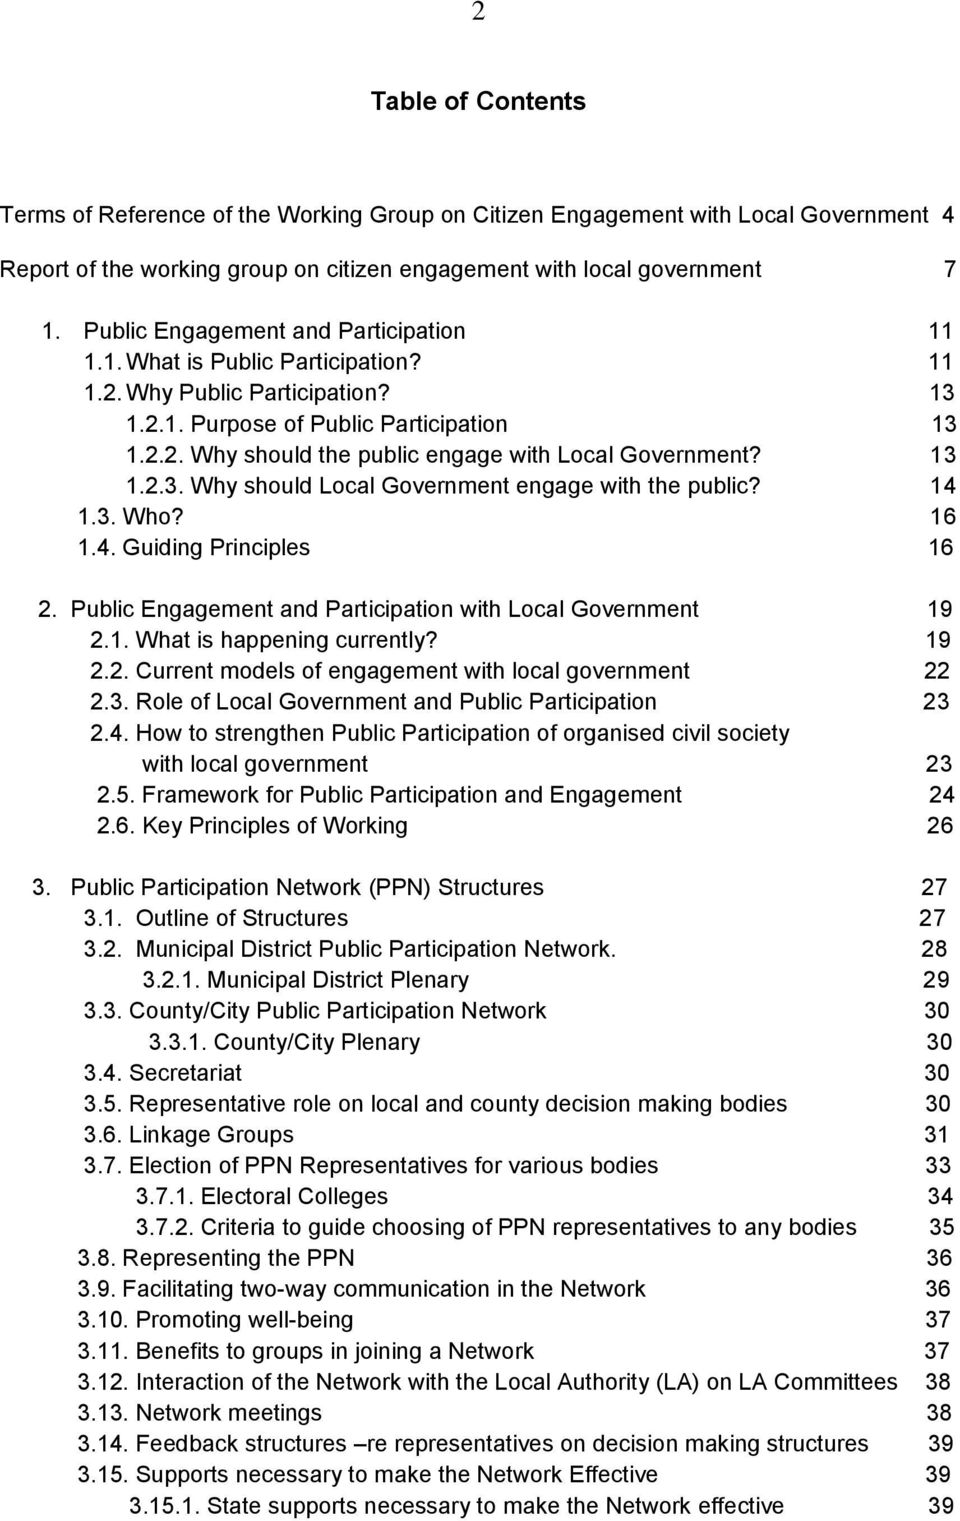 13 1.2.3. Why should Local Government engage with the public? 14 1.3. Who? 16 1.4. Guiding Principles 16 2. Public Engagement and Participation with Local Government 19 2.1. What is happening currently?